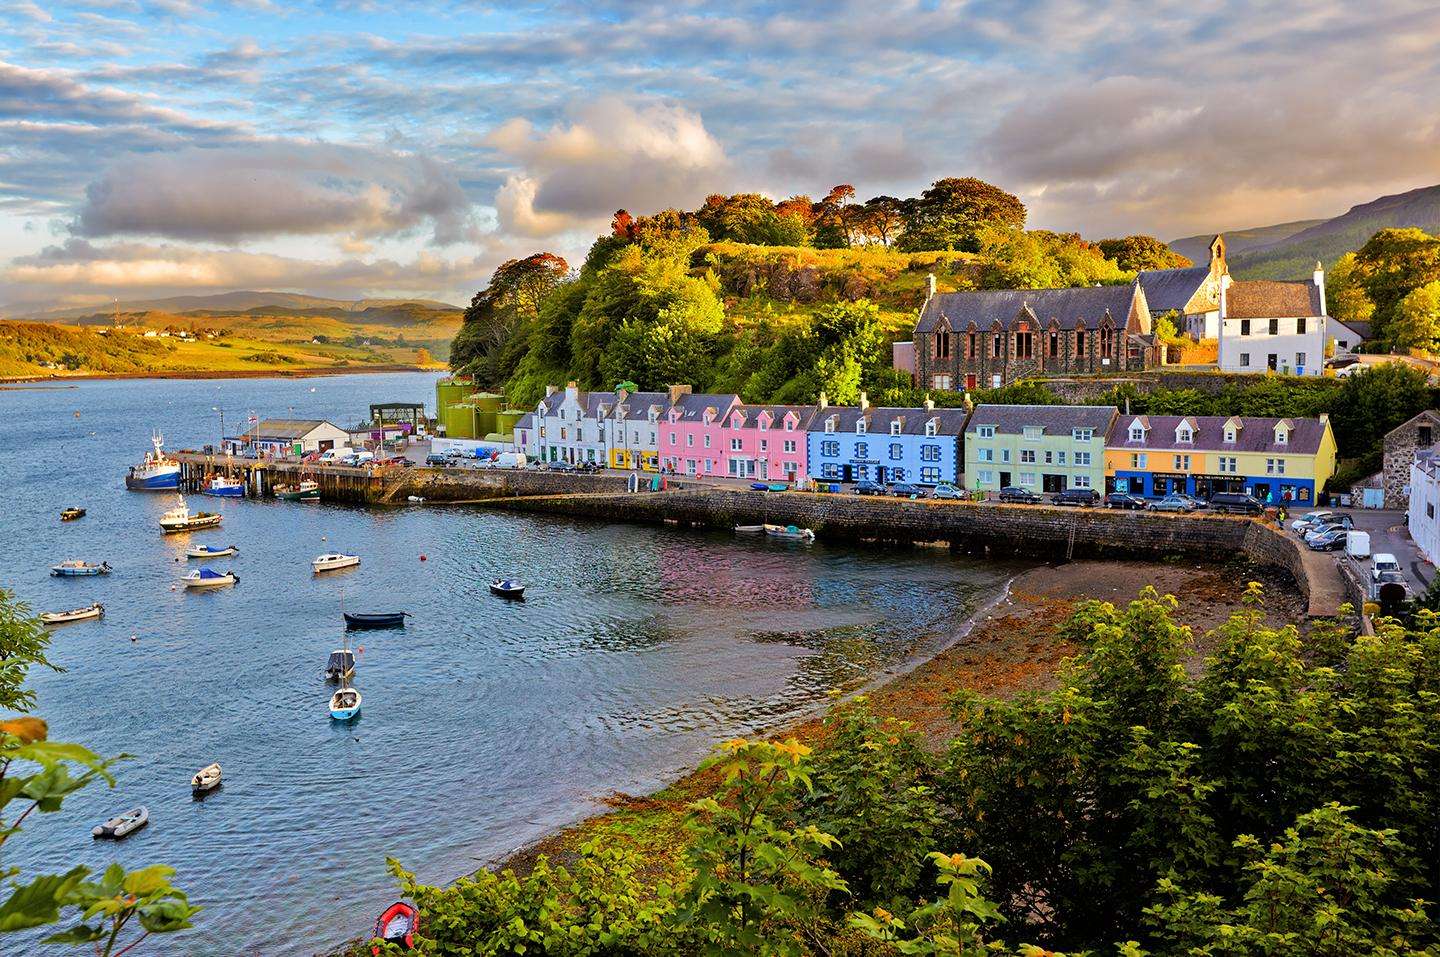 Experience all the charm and culture with Scotland tours & excursions